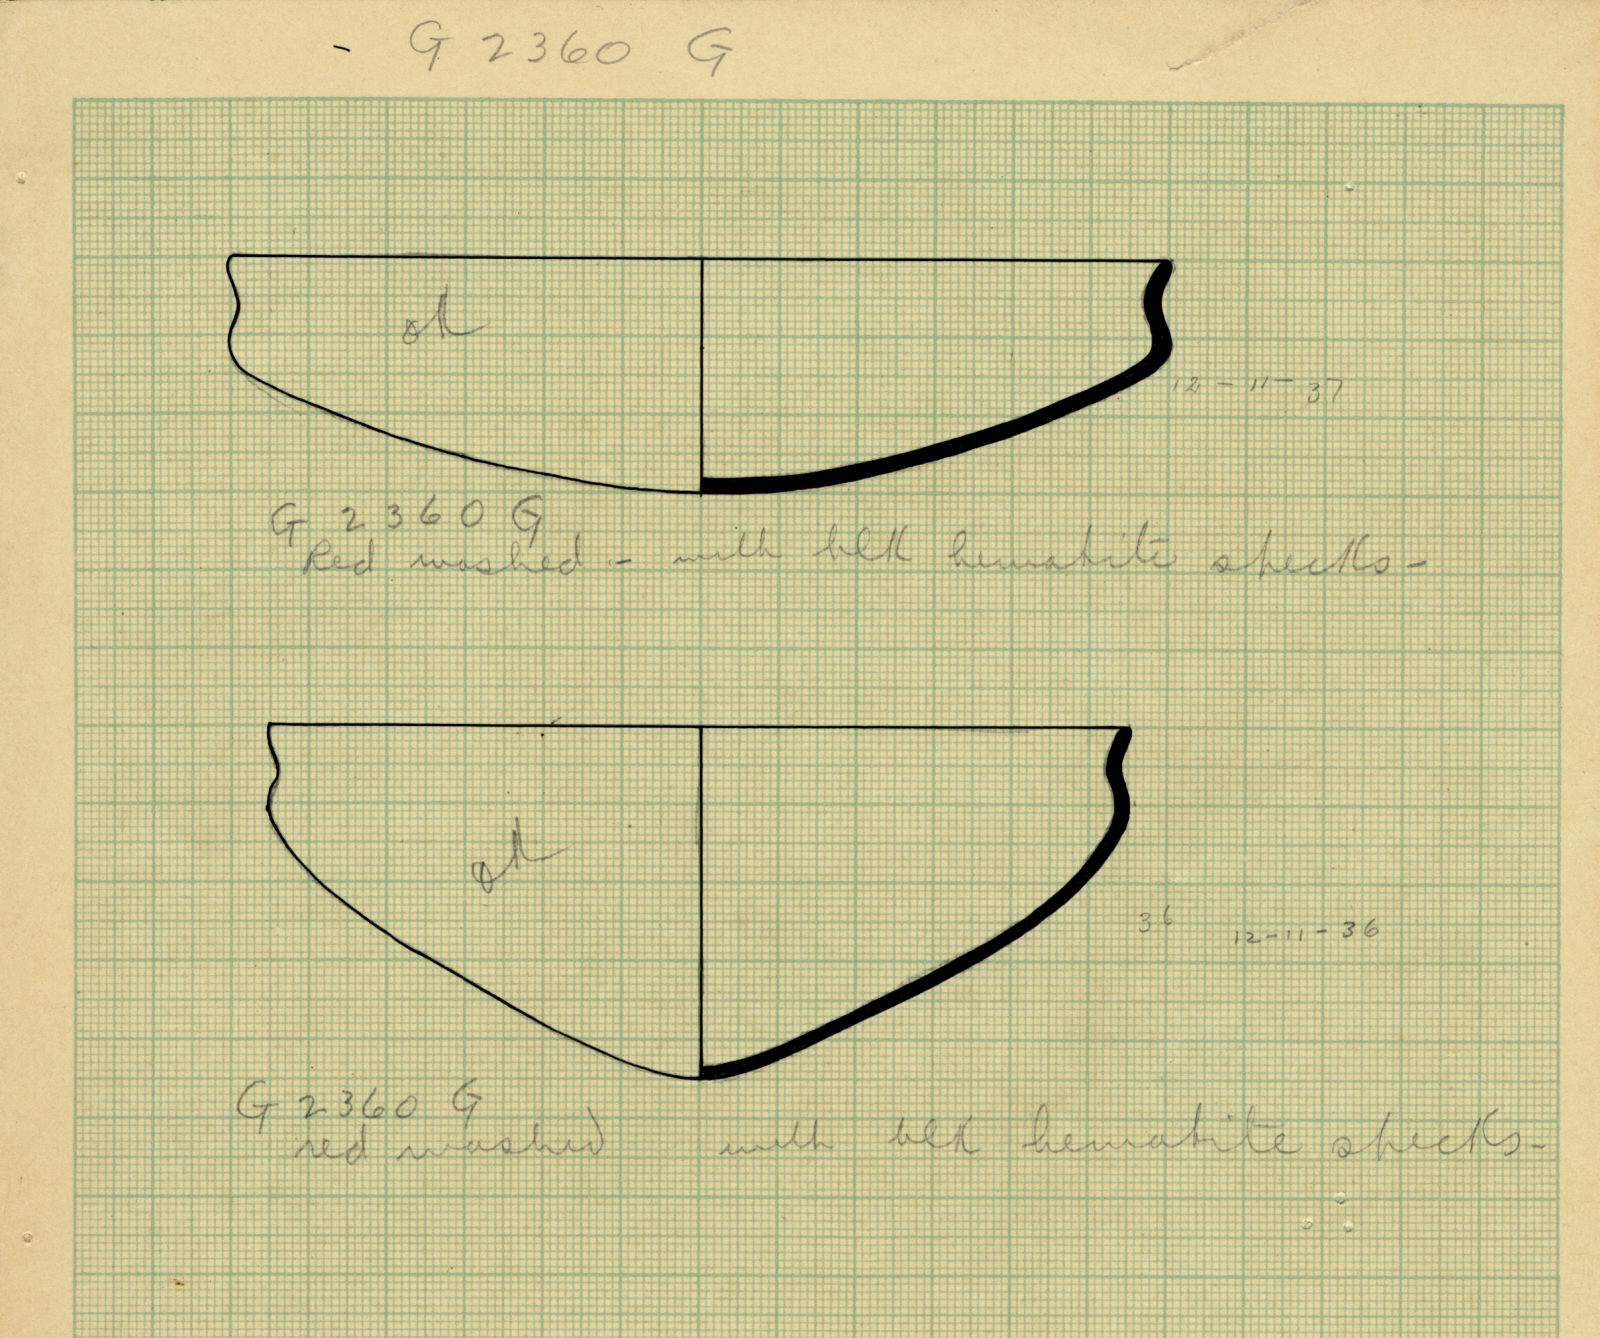 Drawings: G 2360 G: pottery, bowls with recurved rim